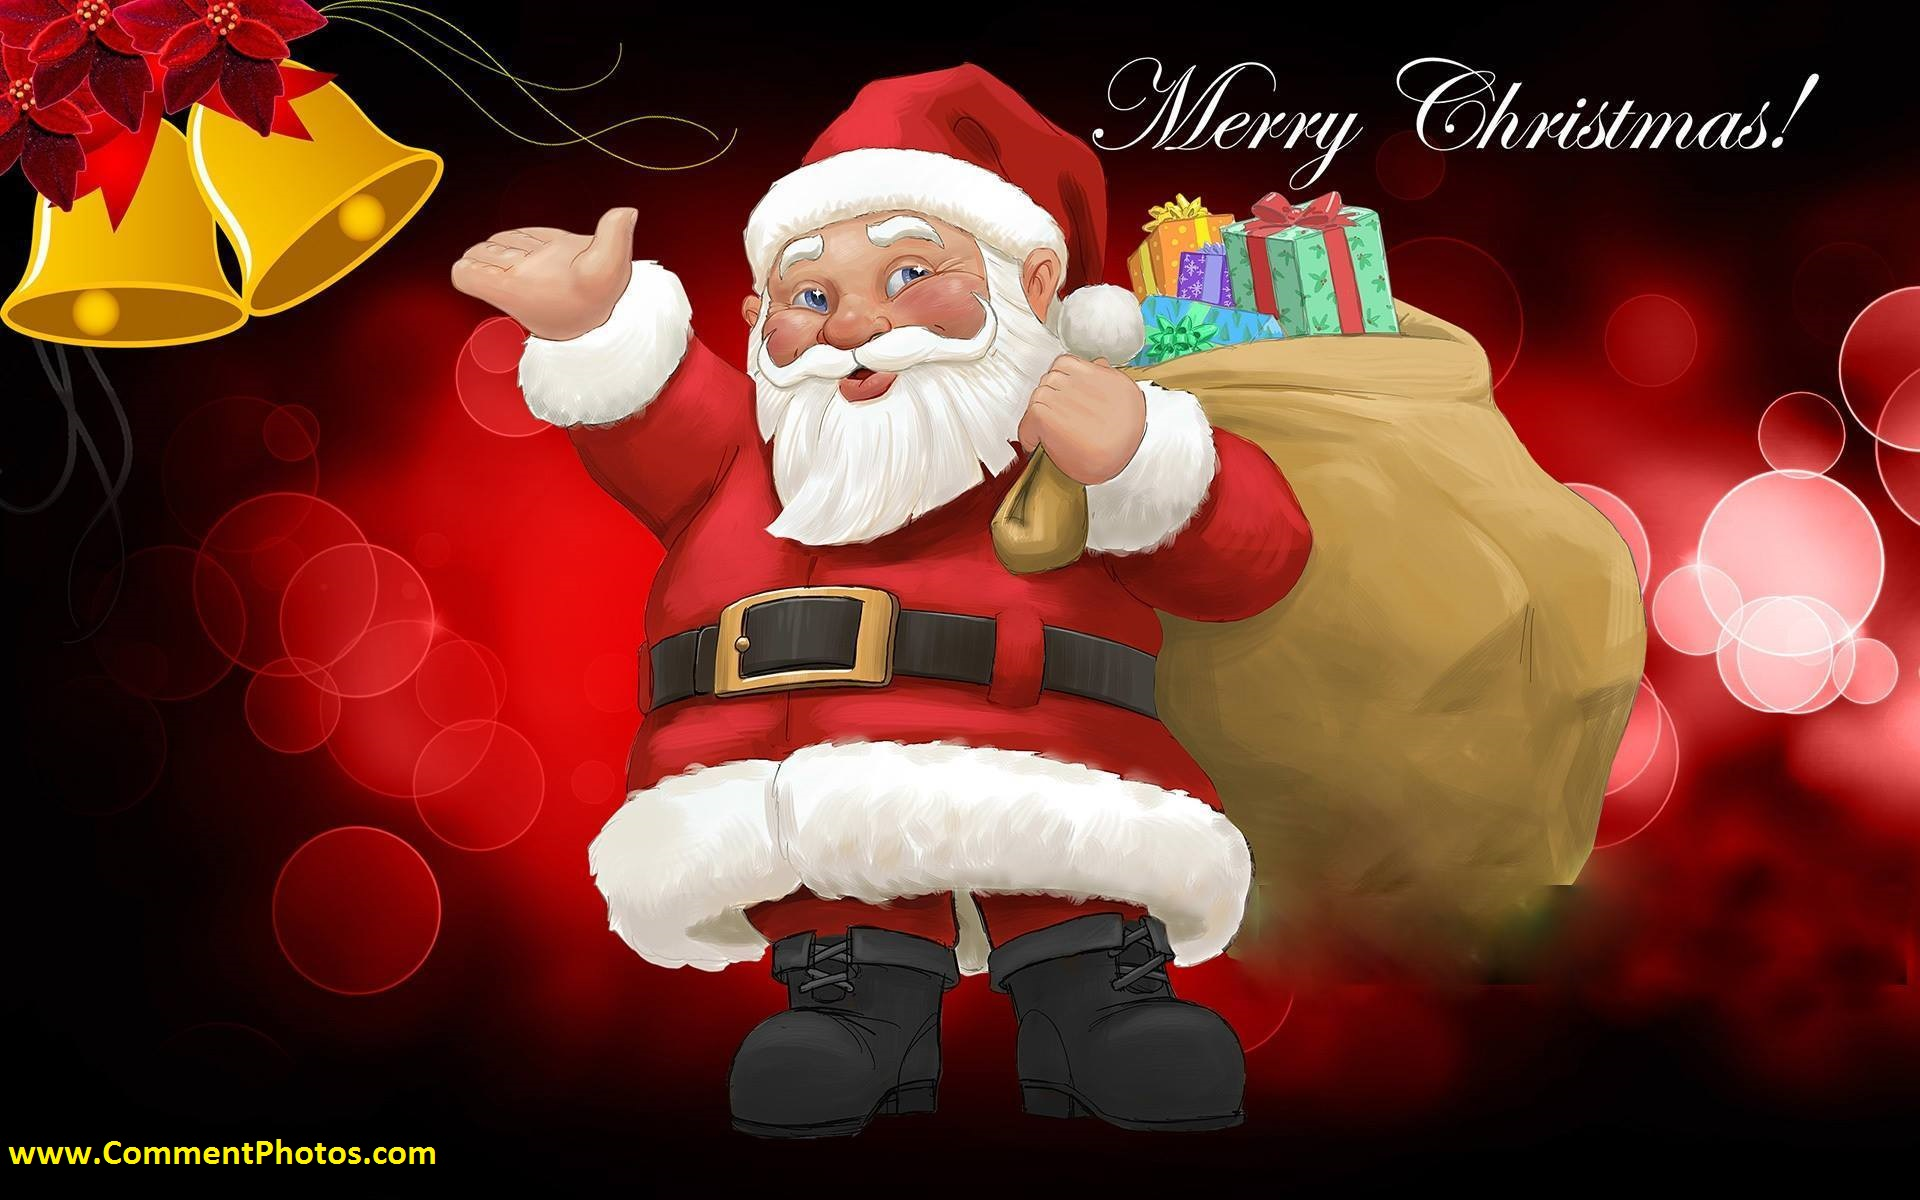 Merry Christmas - Santa Claus - CommentPhotos.com - English Photo ...